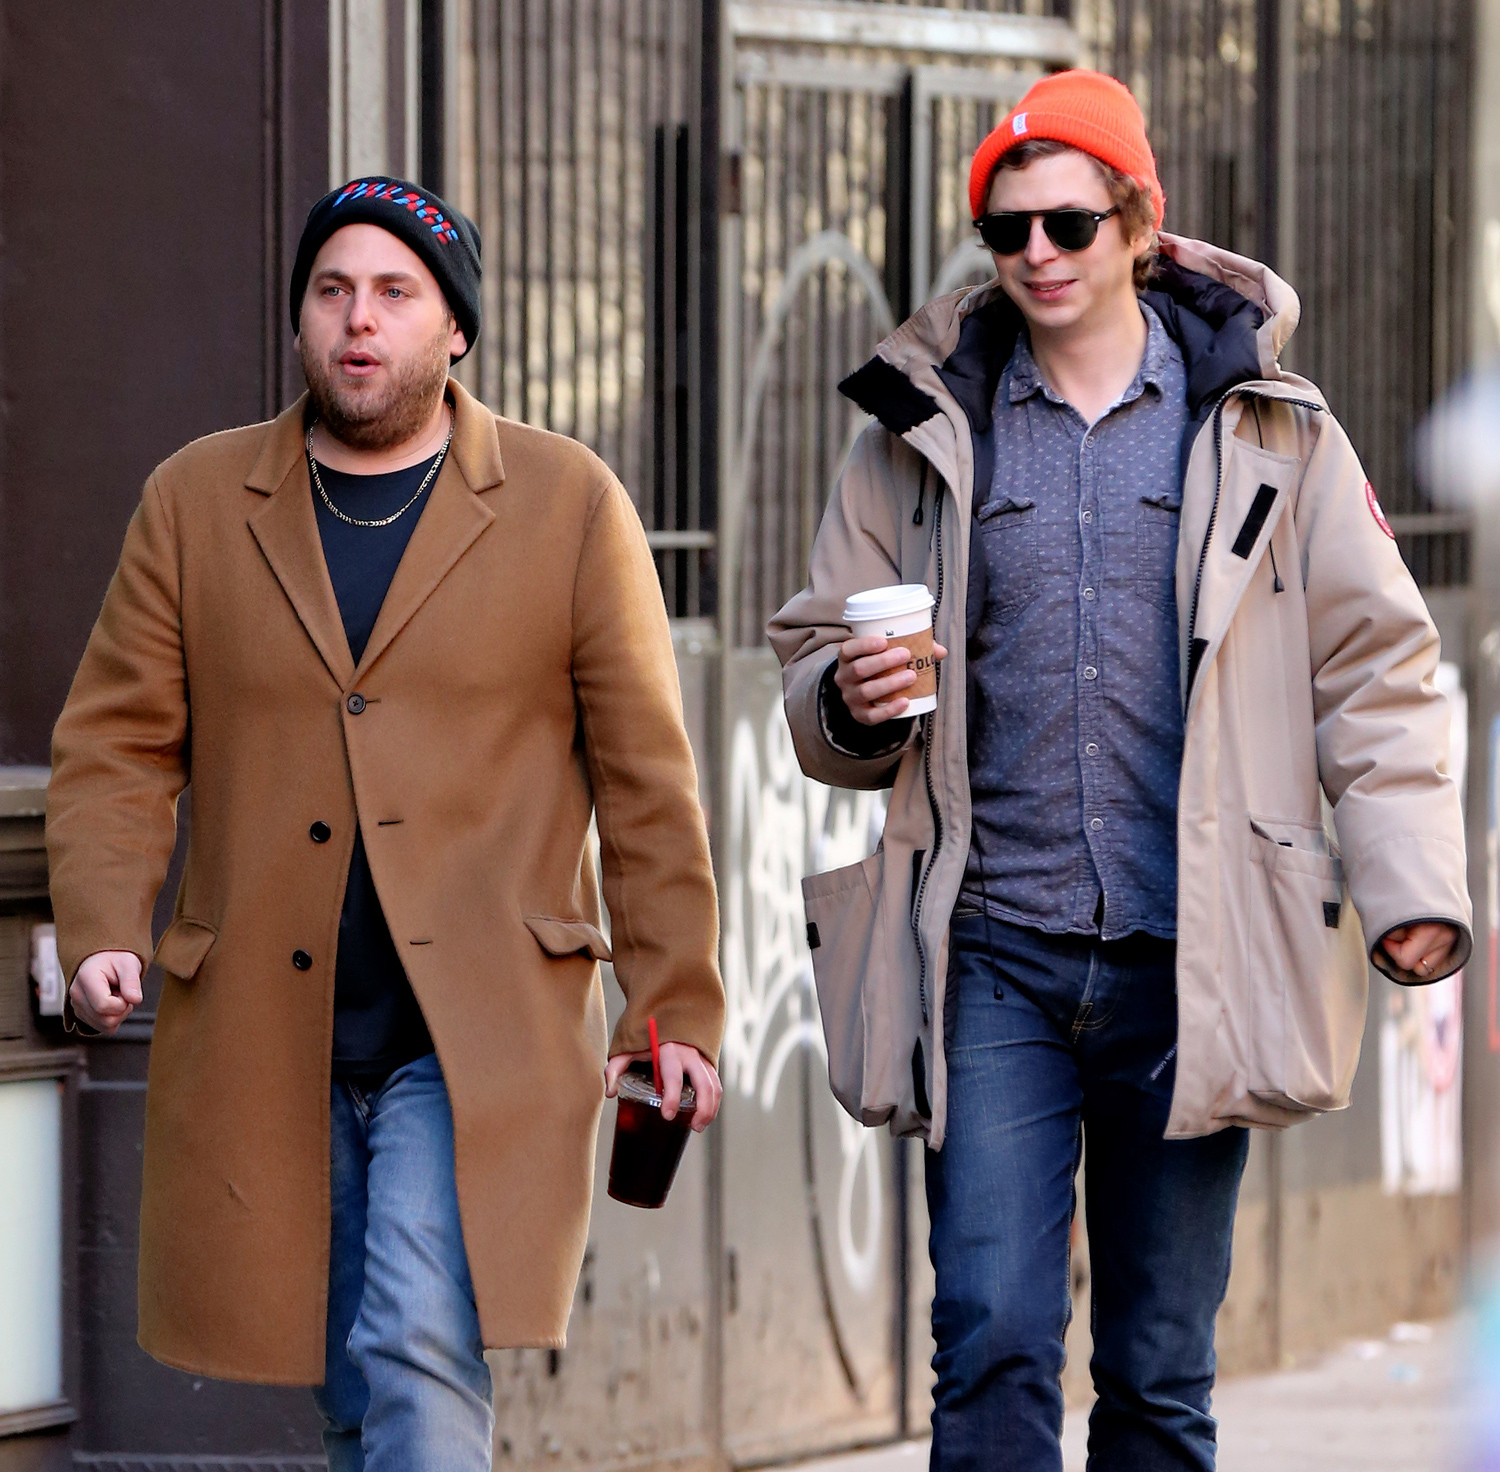 EXCLUSIVE: Actor Jonah Hill, looking slimmed down, grabs an iced coffee with actor Michael Cera on New Year's Day in Soho in New York City